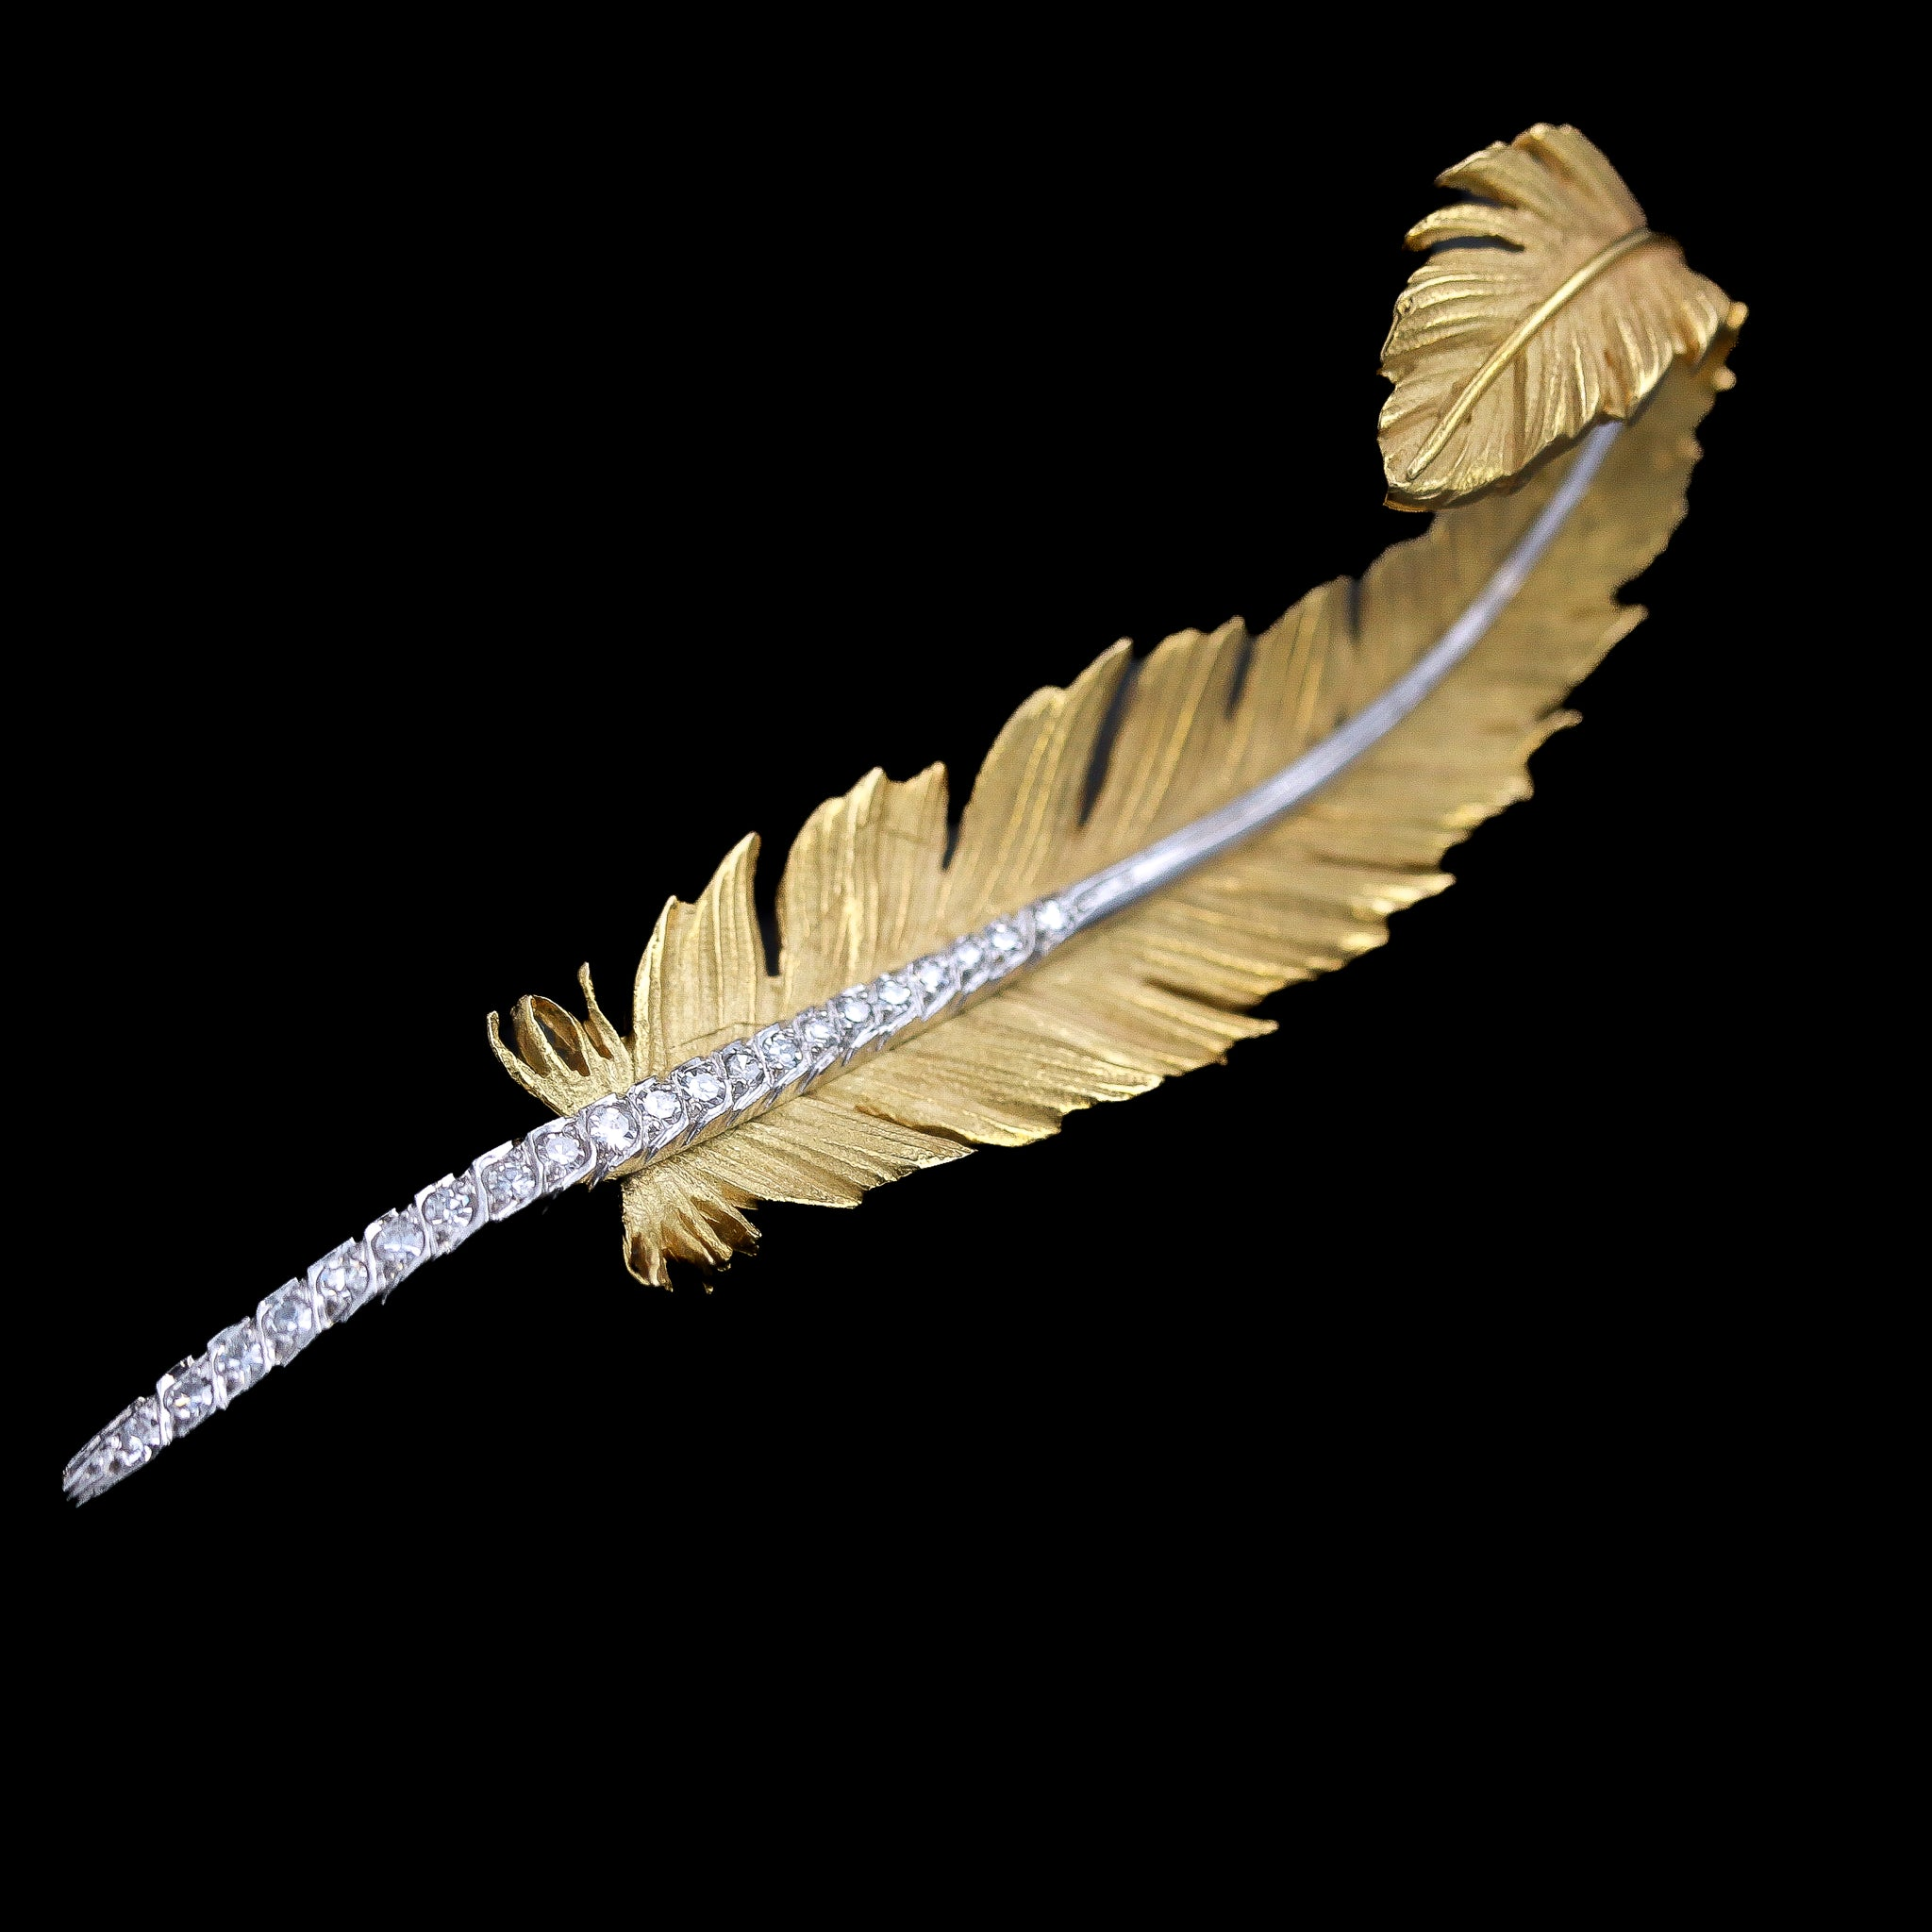 Vintage Yellow Gold & Platinum Diamond Feather Brooch - Sindur